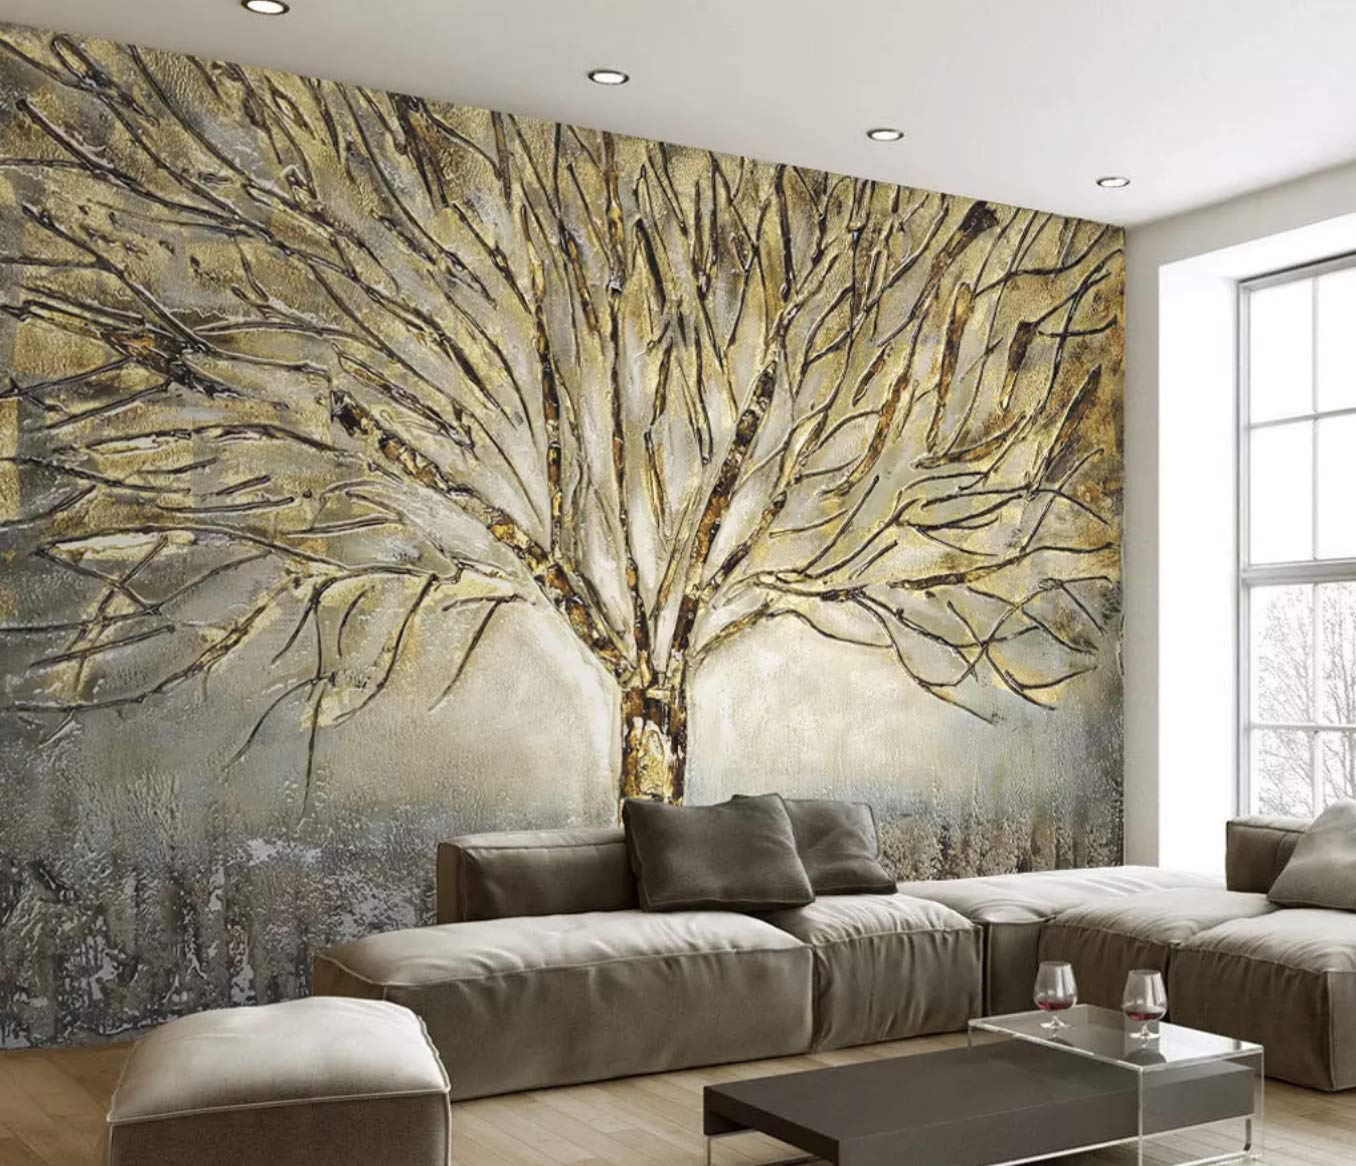 Amazon Com Murwall Tree Wallpaper Autumn Tree Wall Mural Watercolor Paint Art Natural Home Decor Cafe Design Living Room Bedroom Entryway Handmade